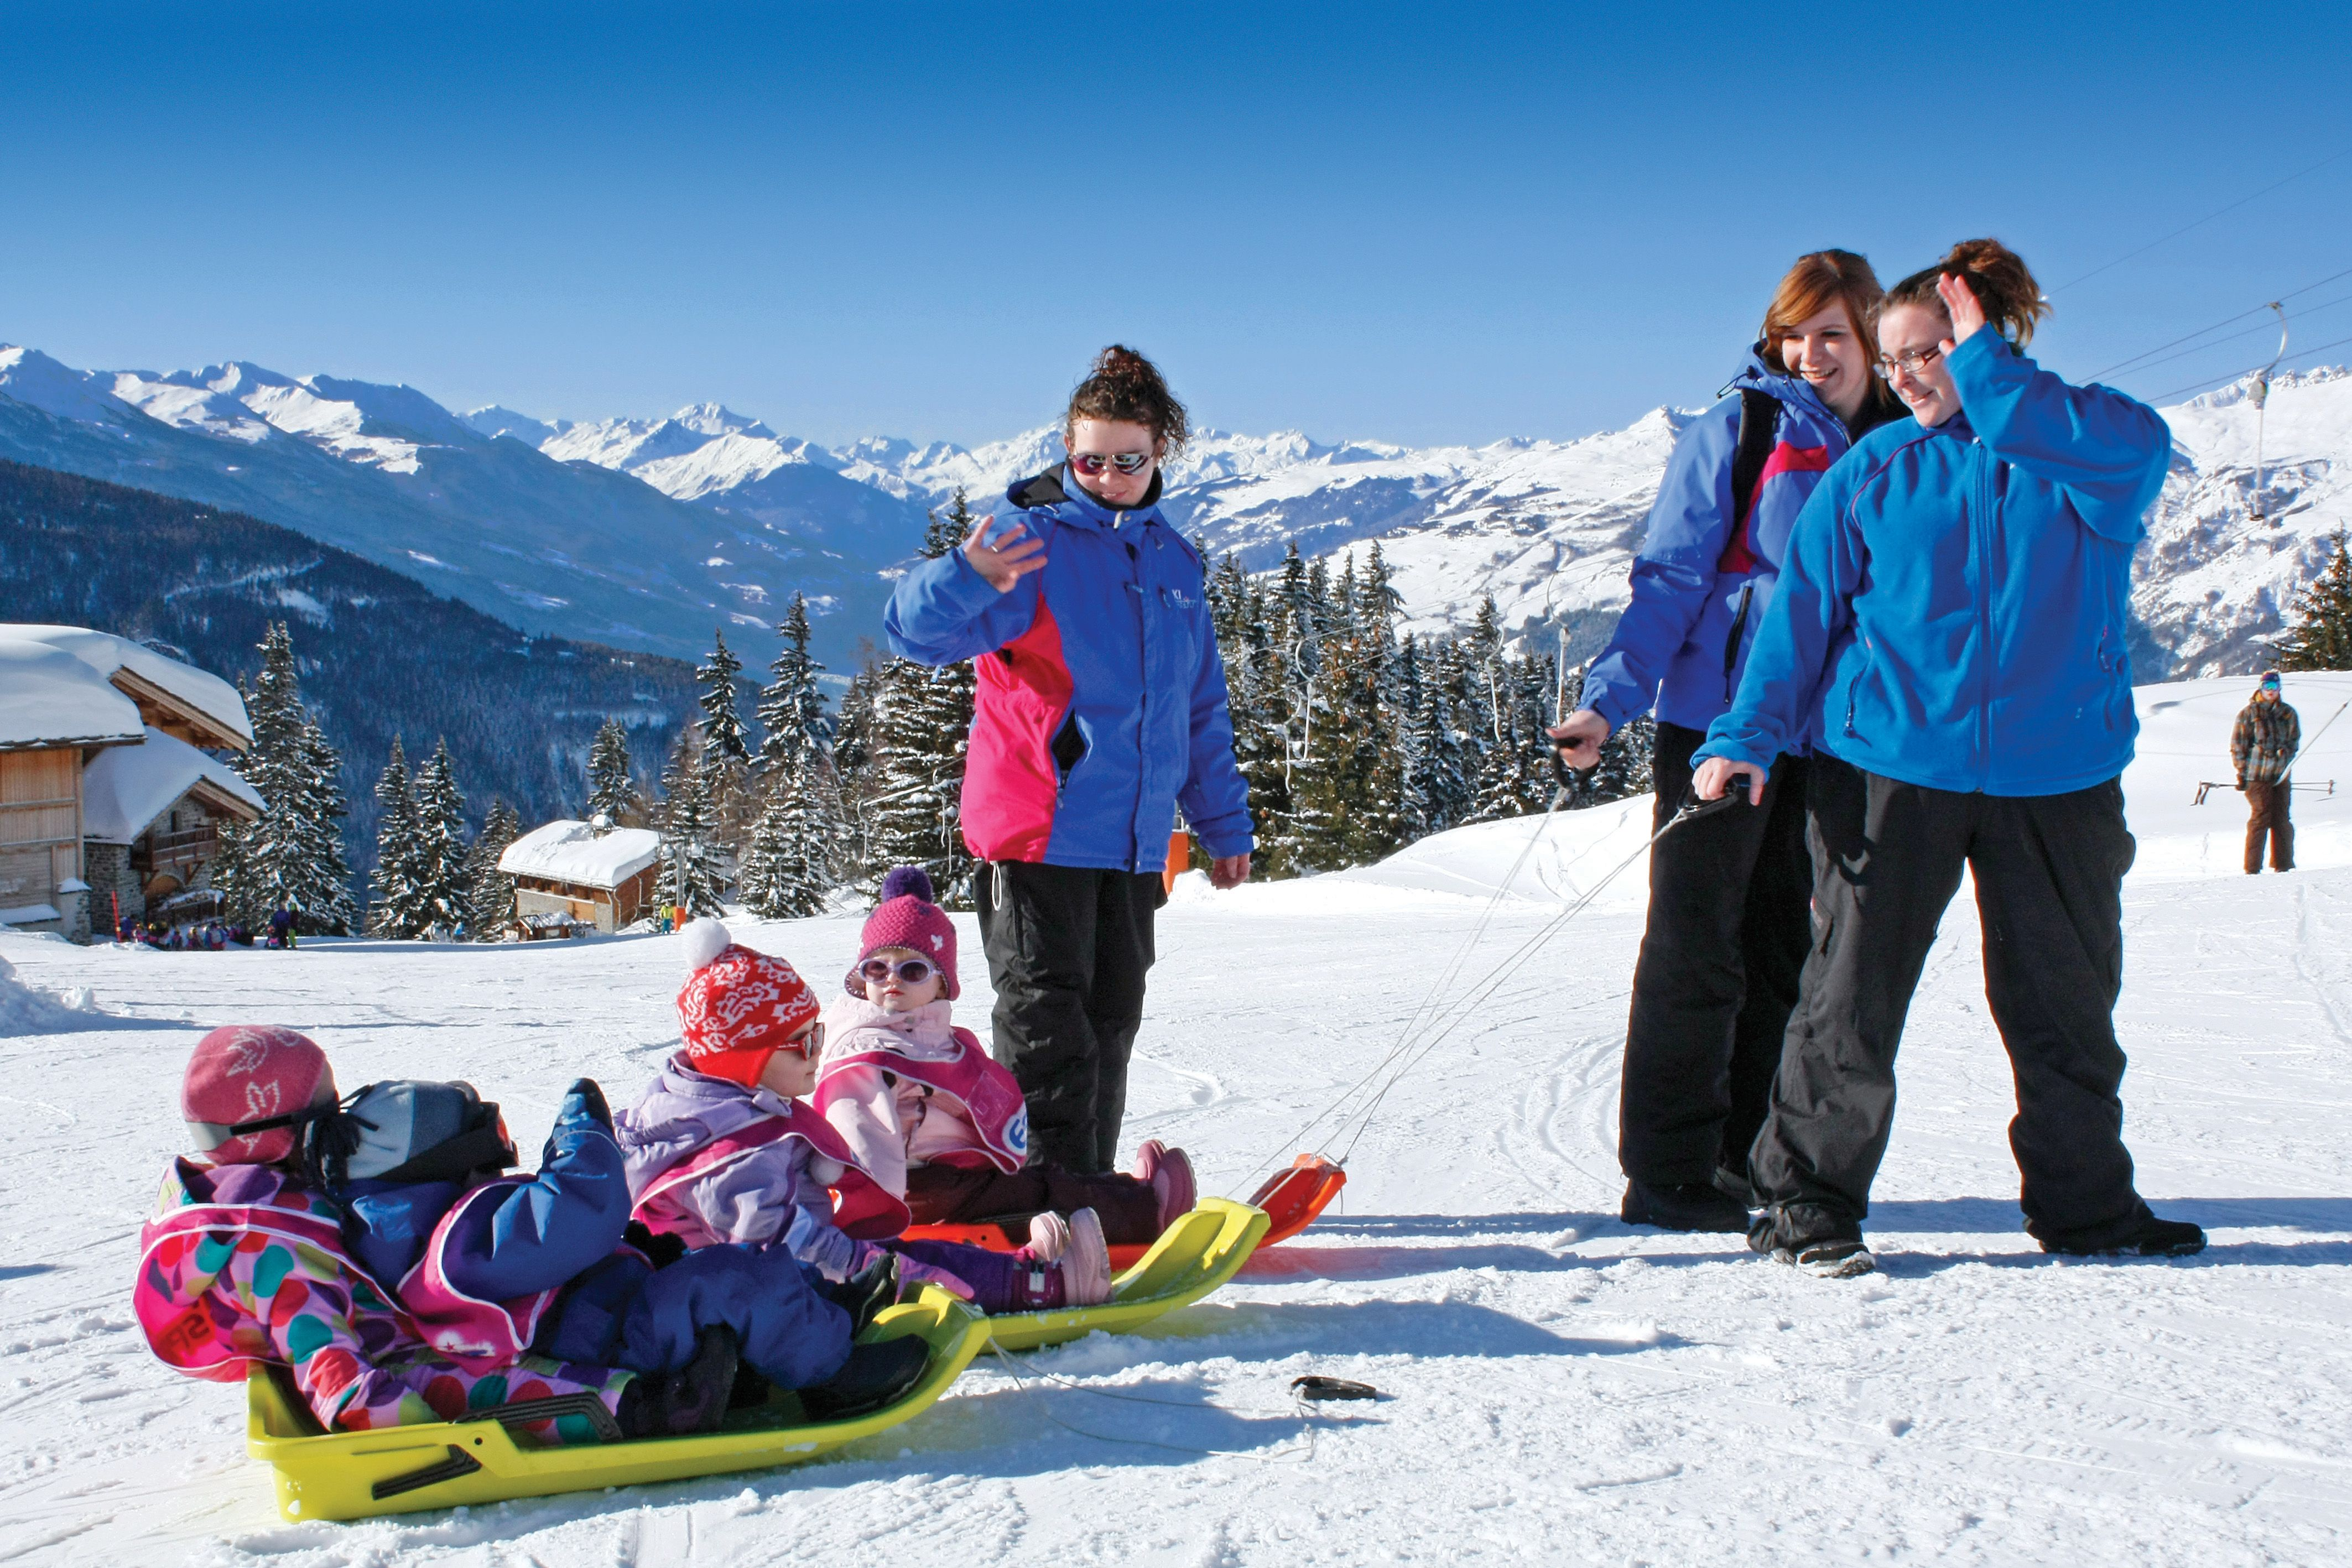 Sledding in La Rosiere.  In the background you can see Chalets Ourson and Landelieres.